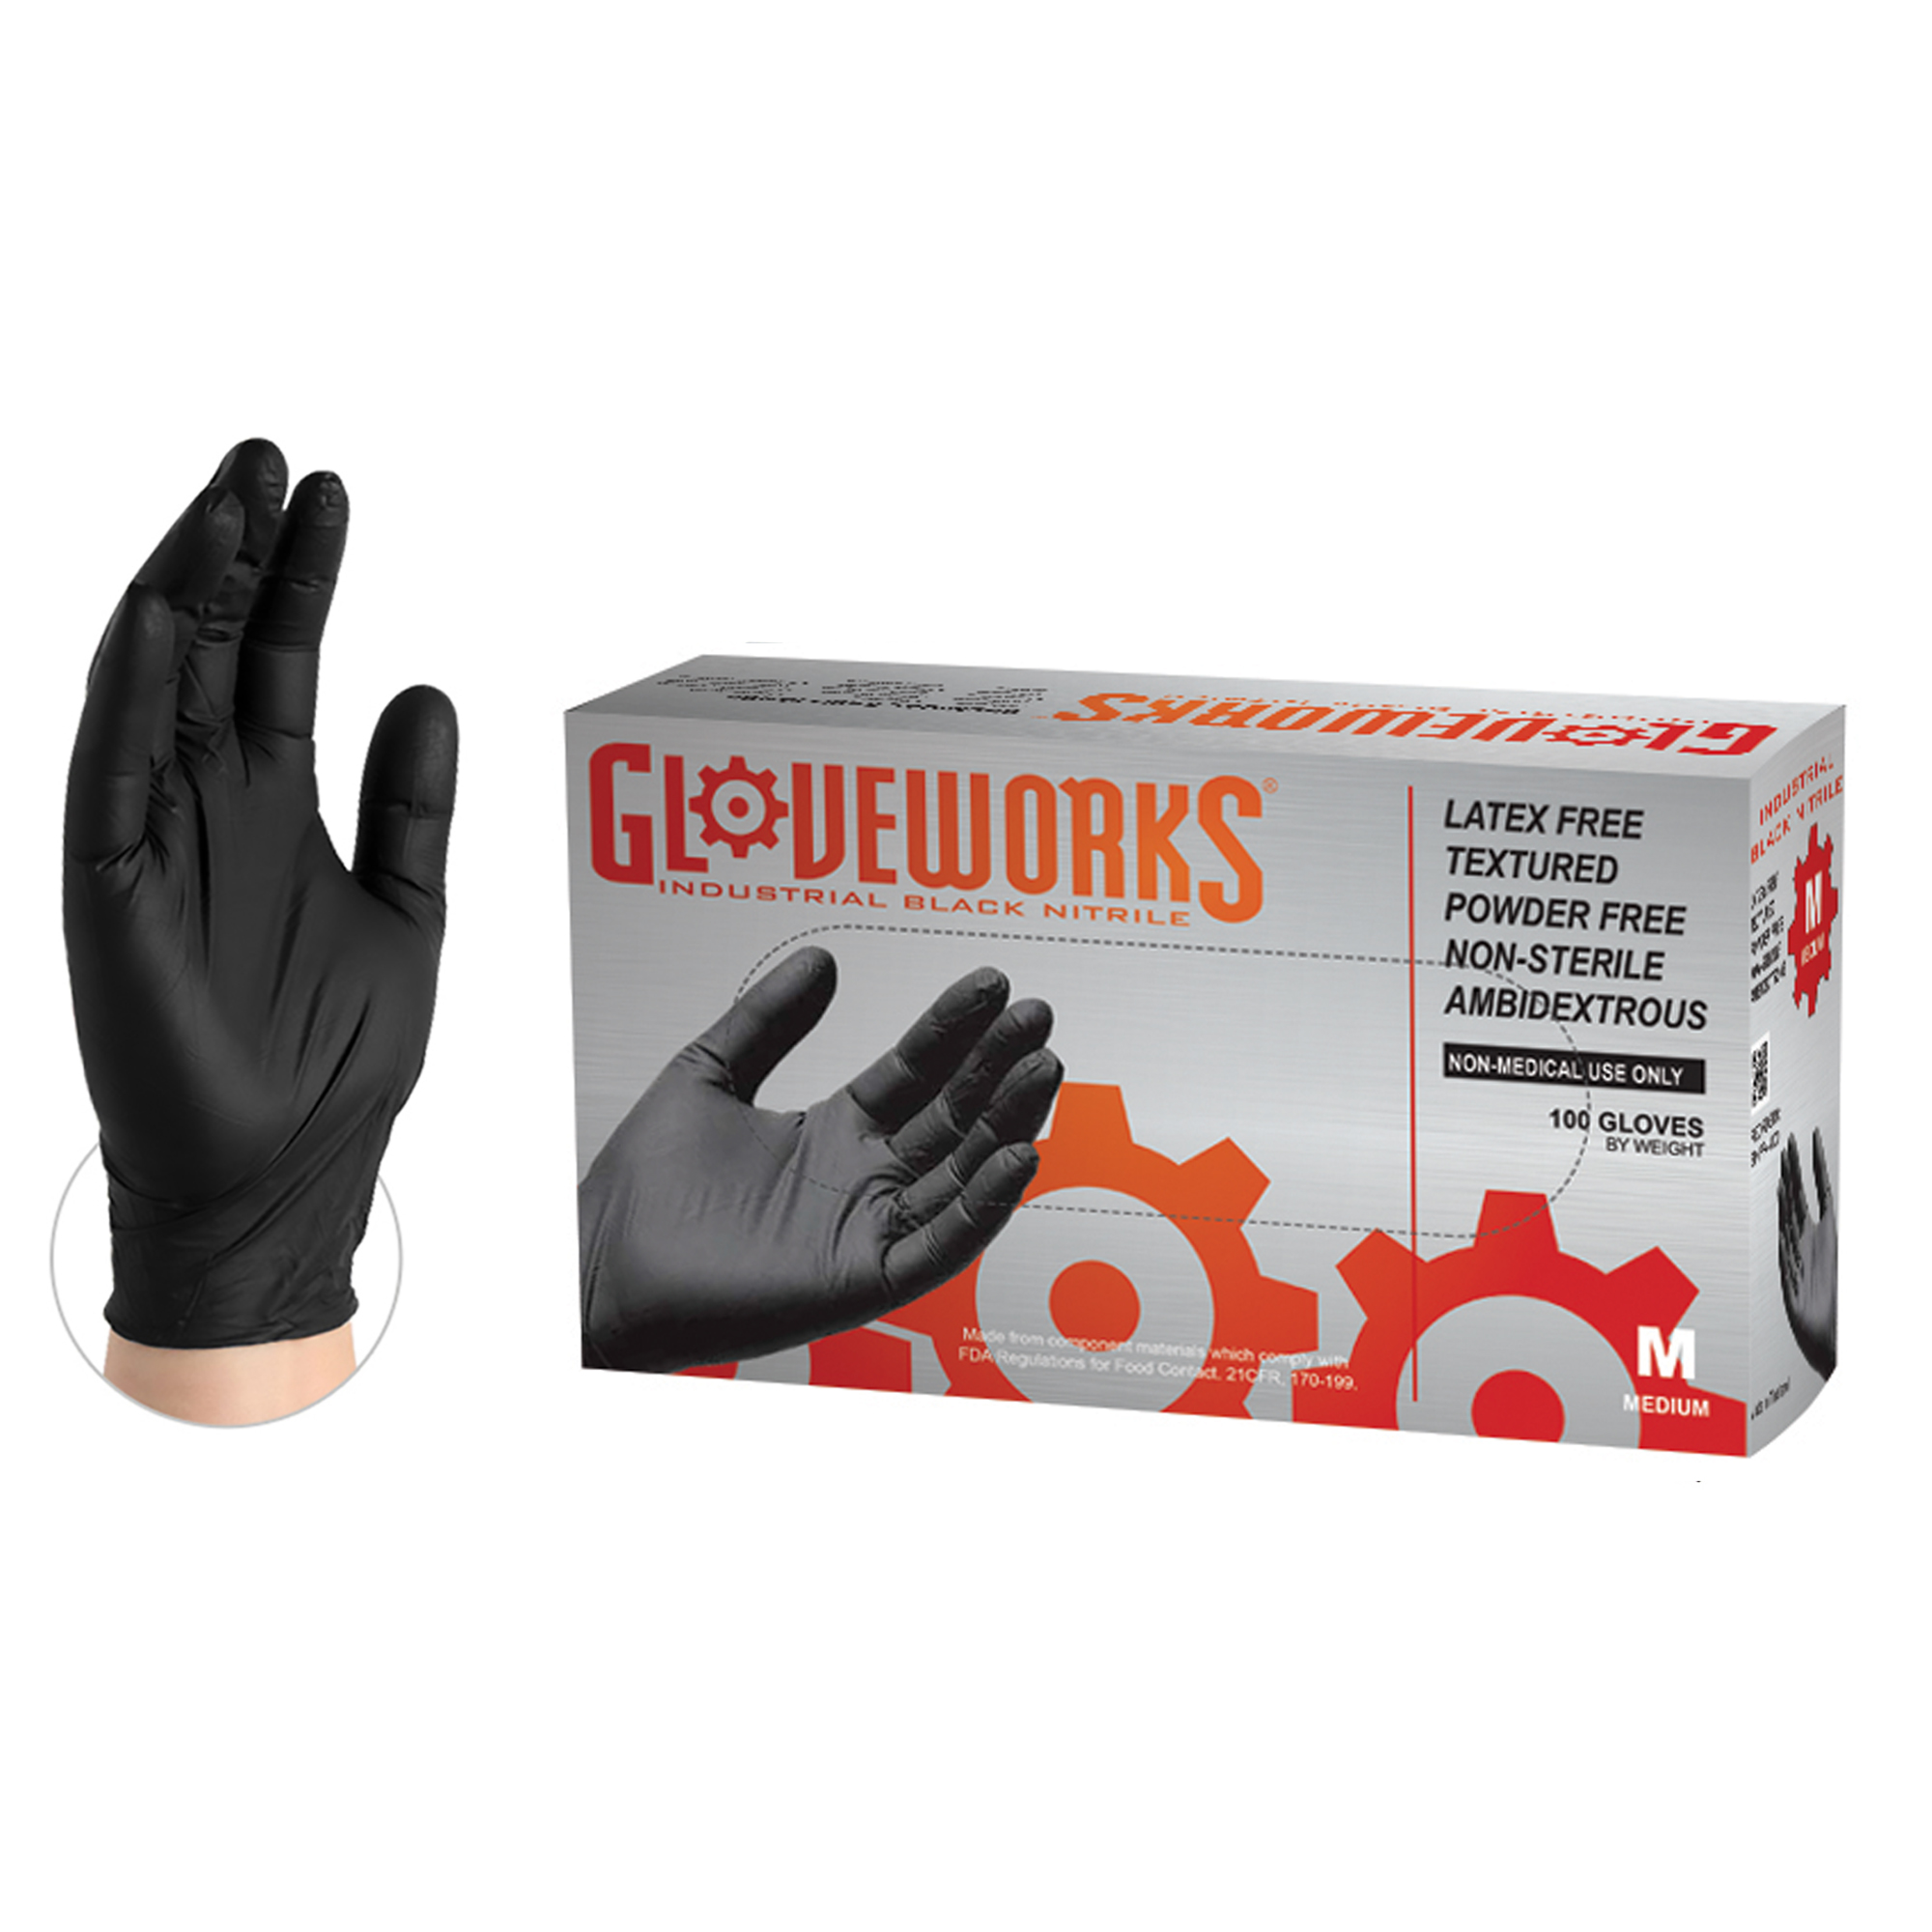 AMMEX GLOVEWORKS Black Nitrile Industrial Latex Free Disposable Gloves